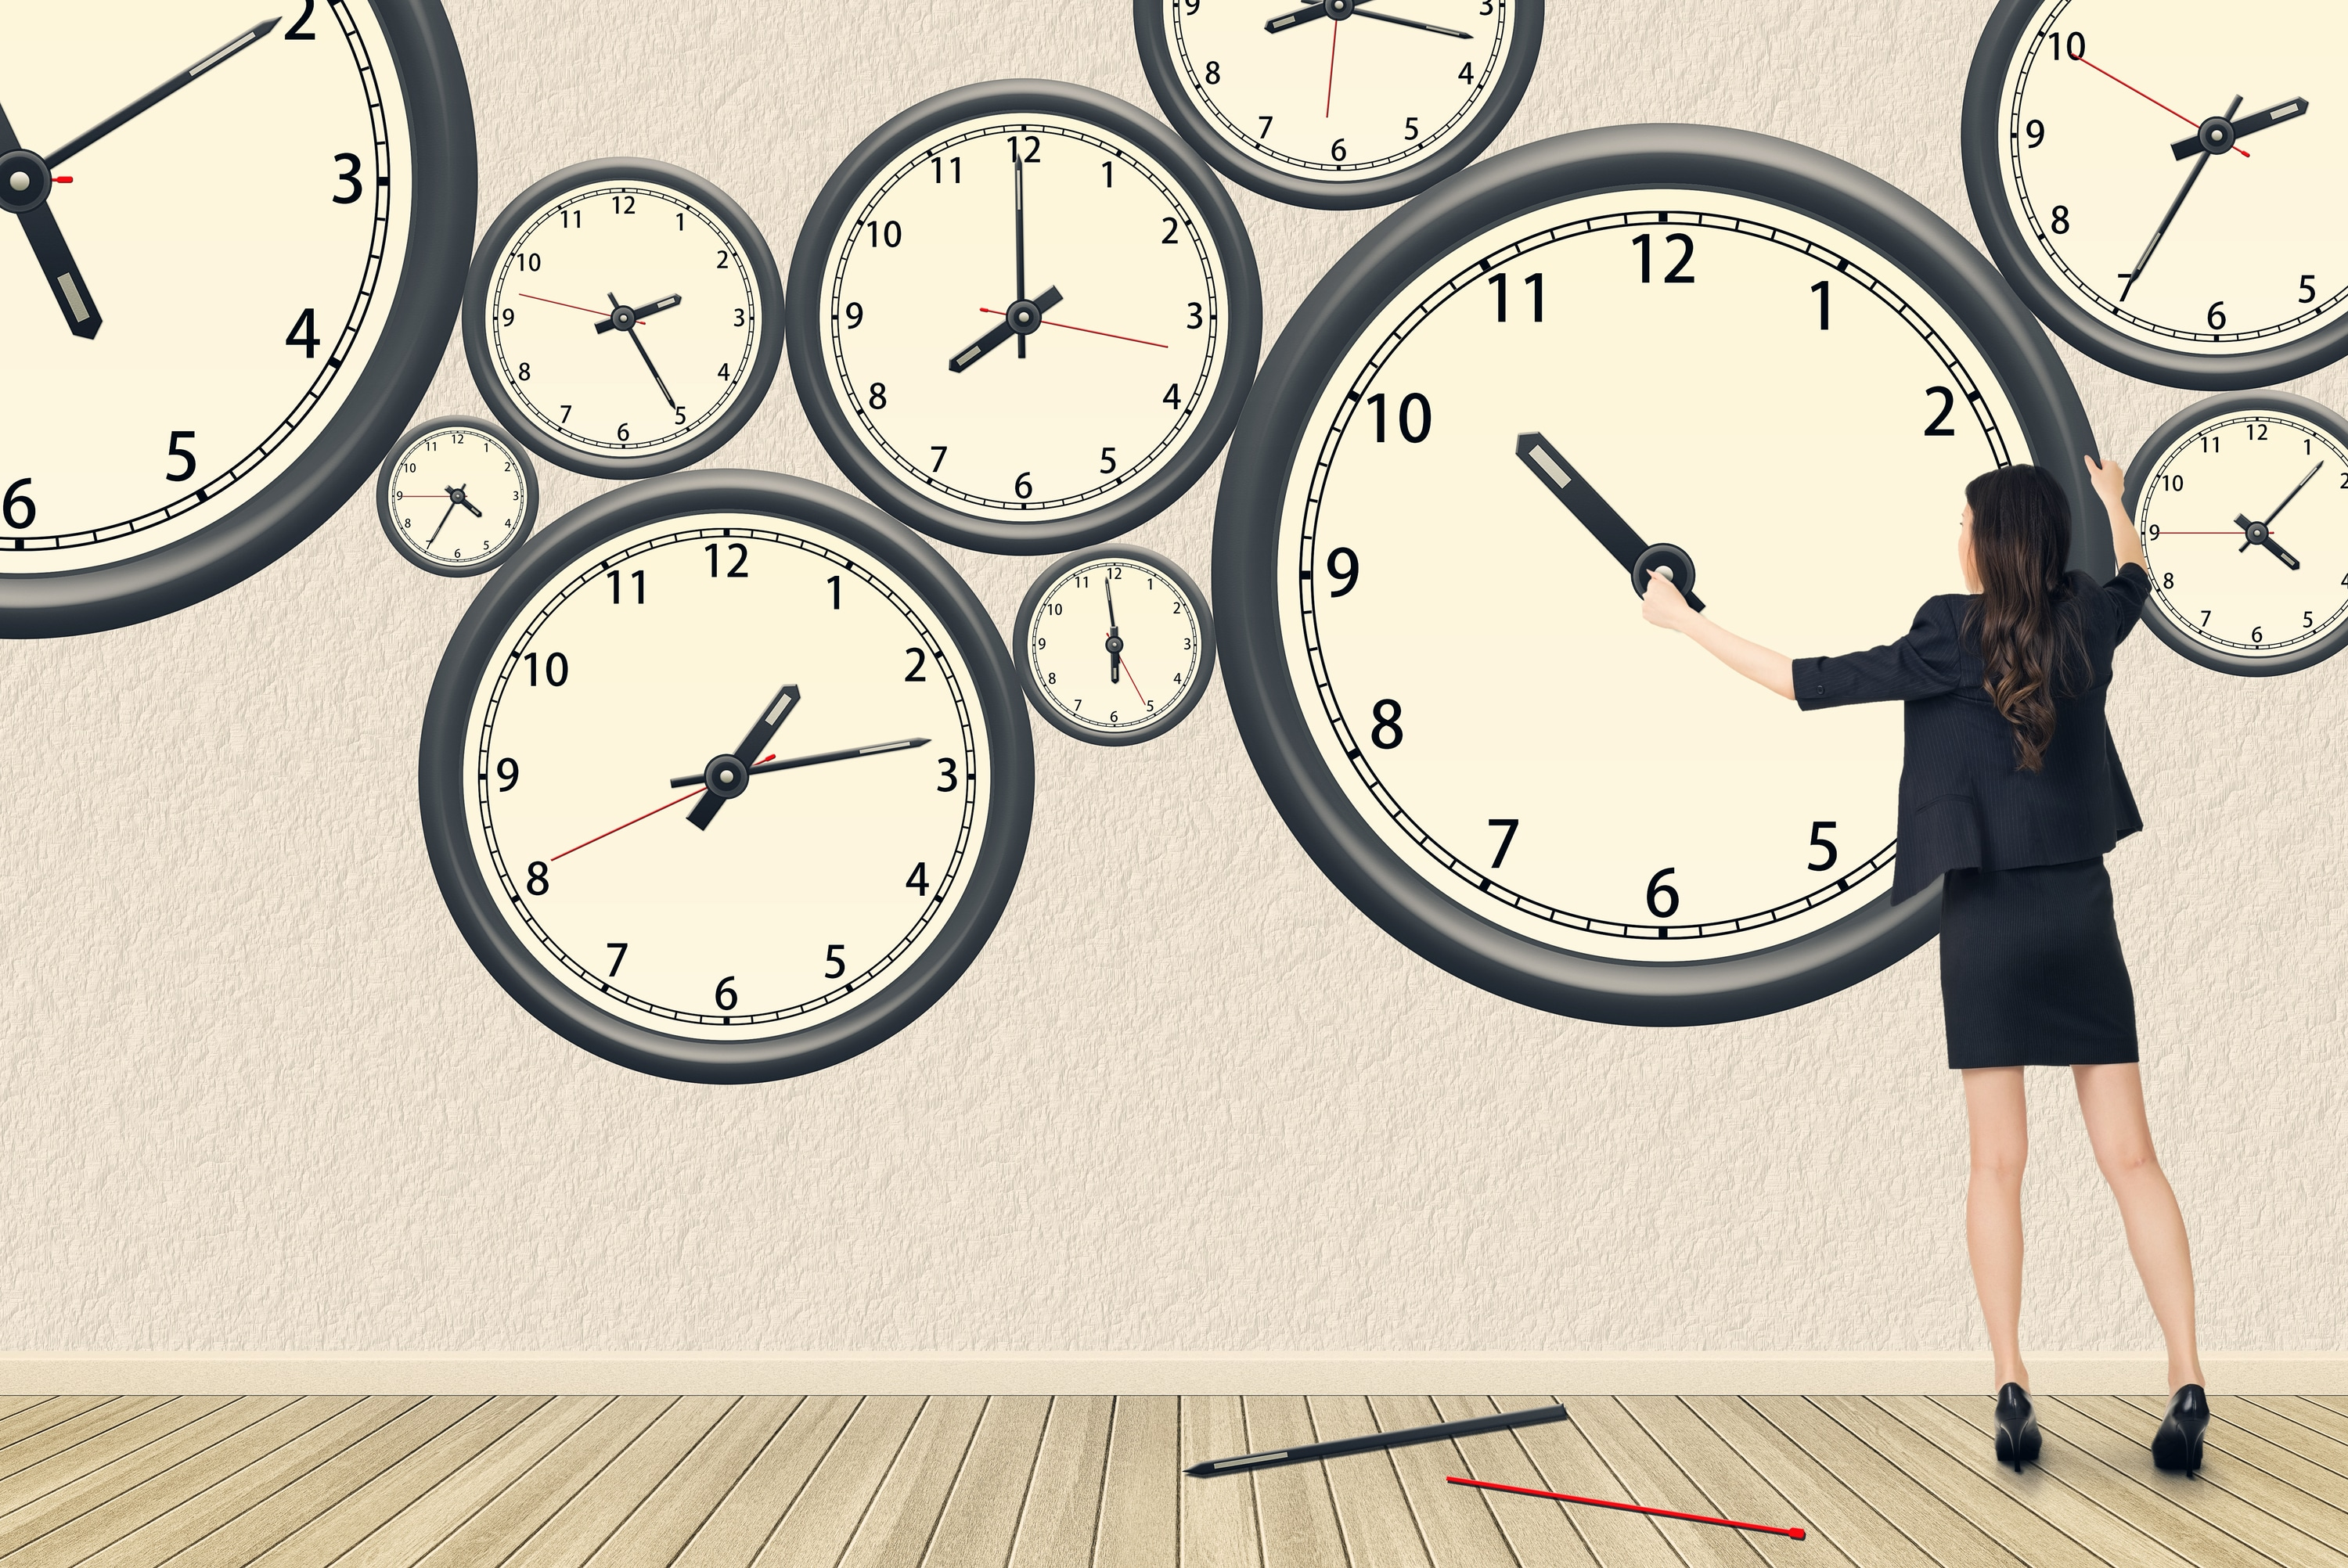 5 Effective Time Management Tips Skills And Techniques